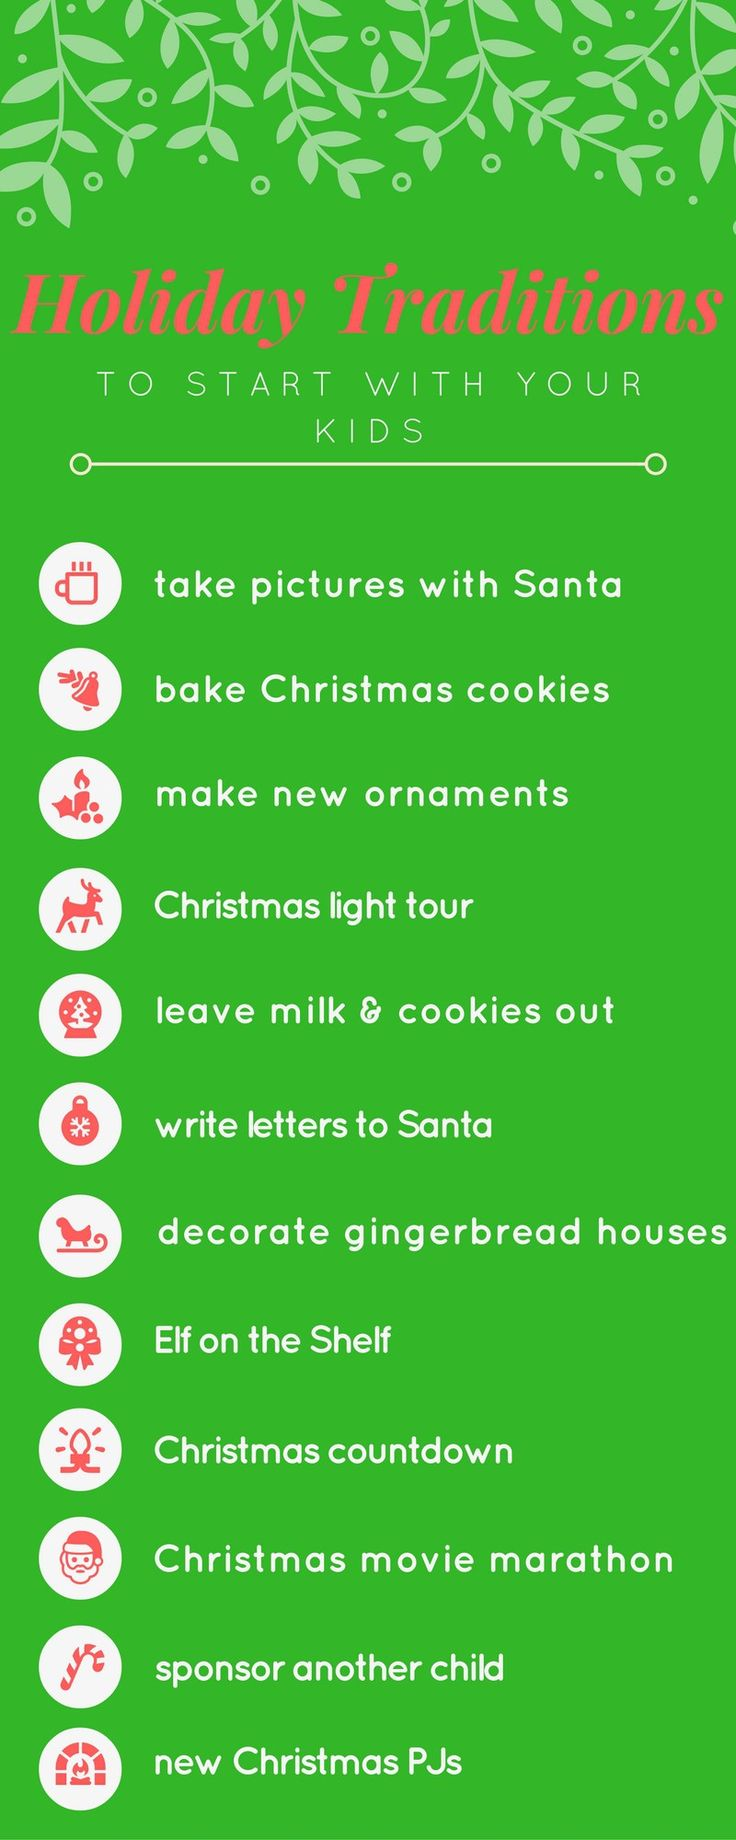 Magnificent 1000 Ideas About Christmas Traditions Kids On Pinterest Santa Easy Diy Christmas Decorations Tissureus